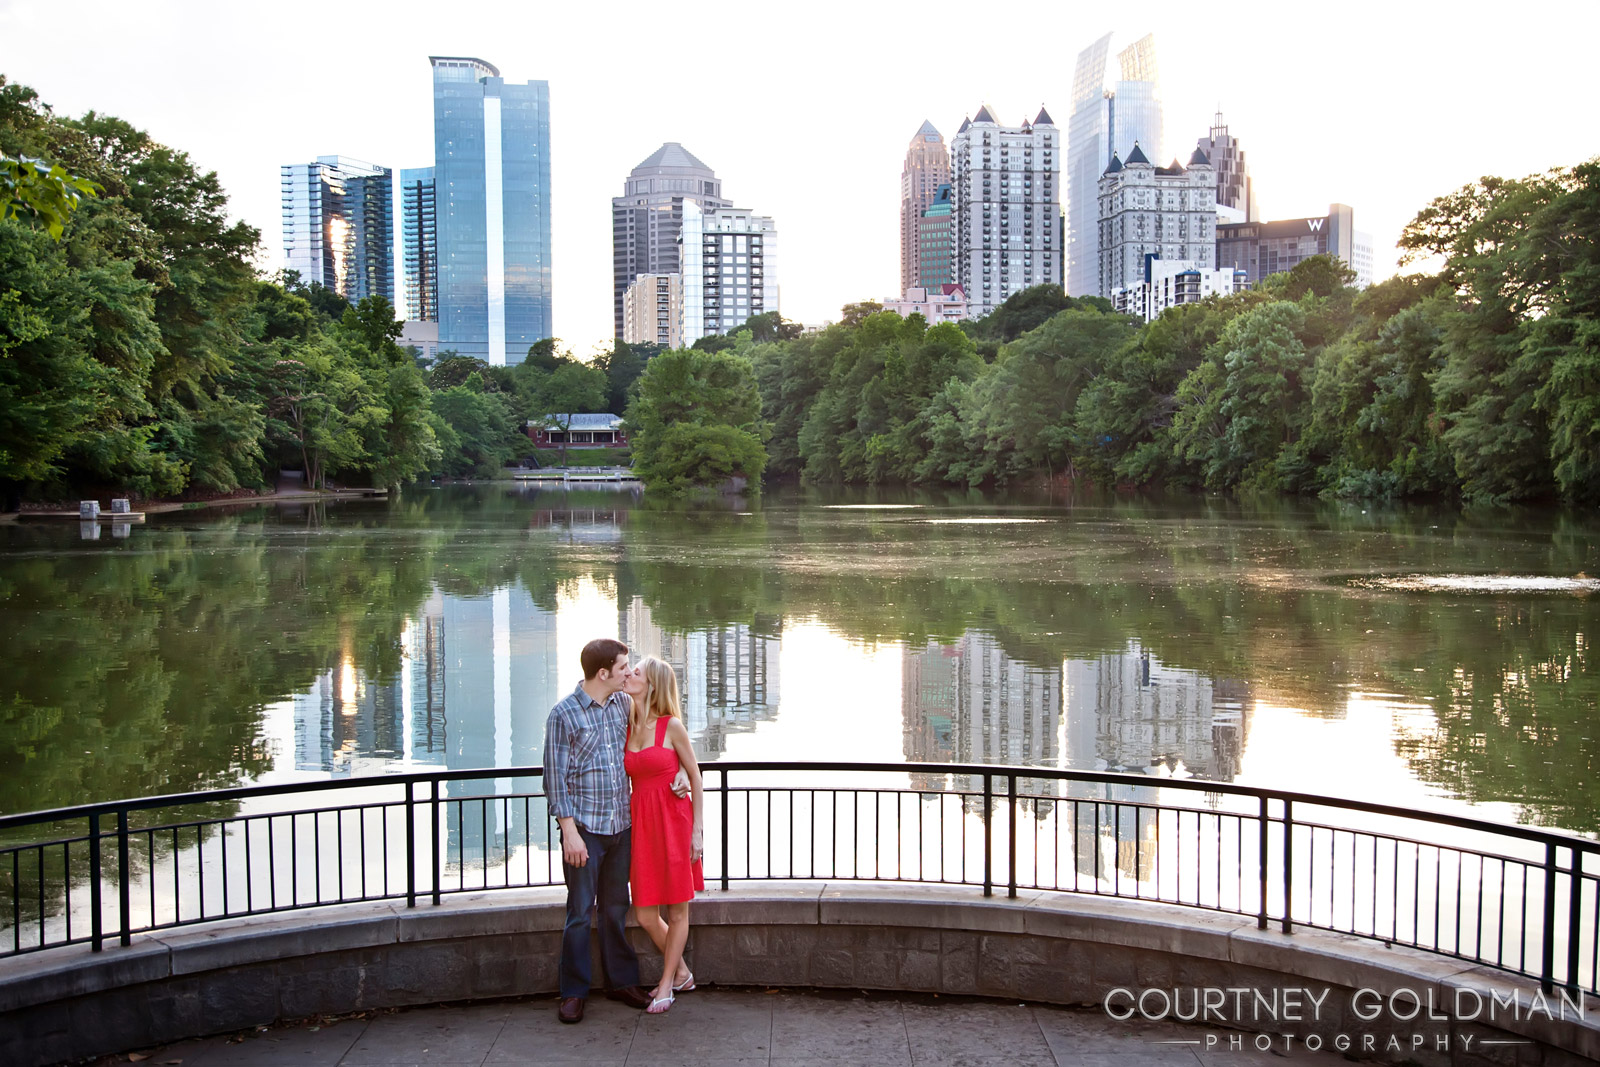 Atlanta-Couples-Engagement-Proposal-Photography-by-Courtney-Goldman-28.jpg